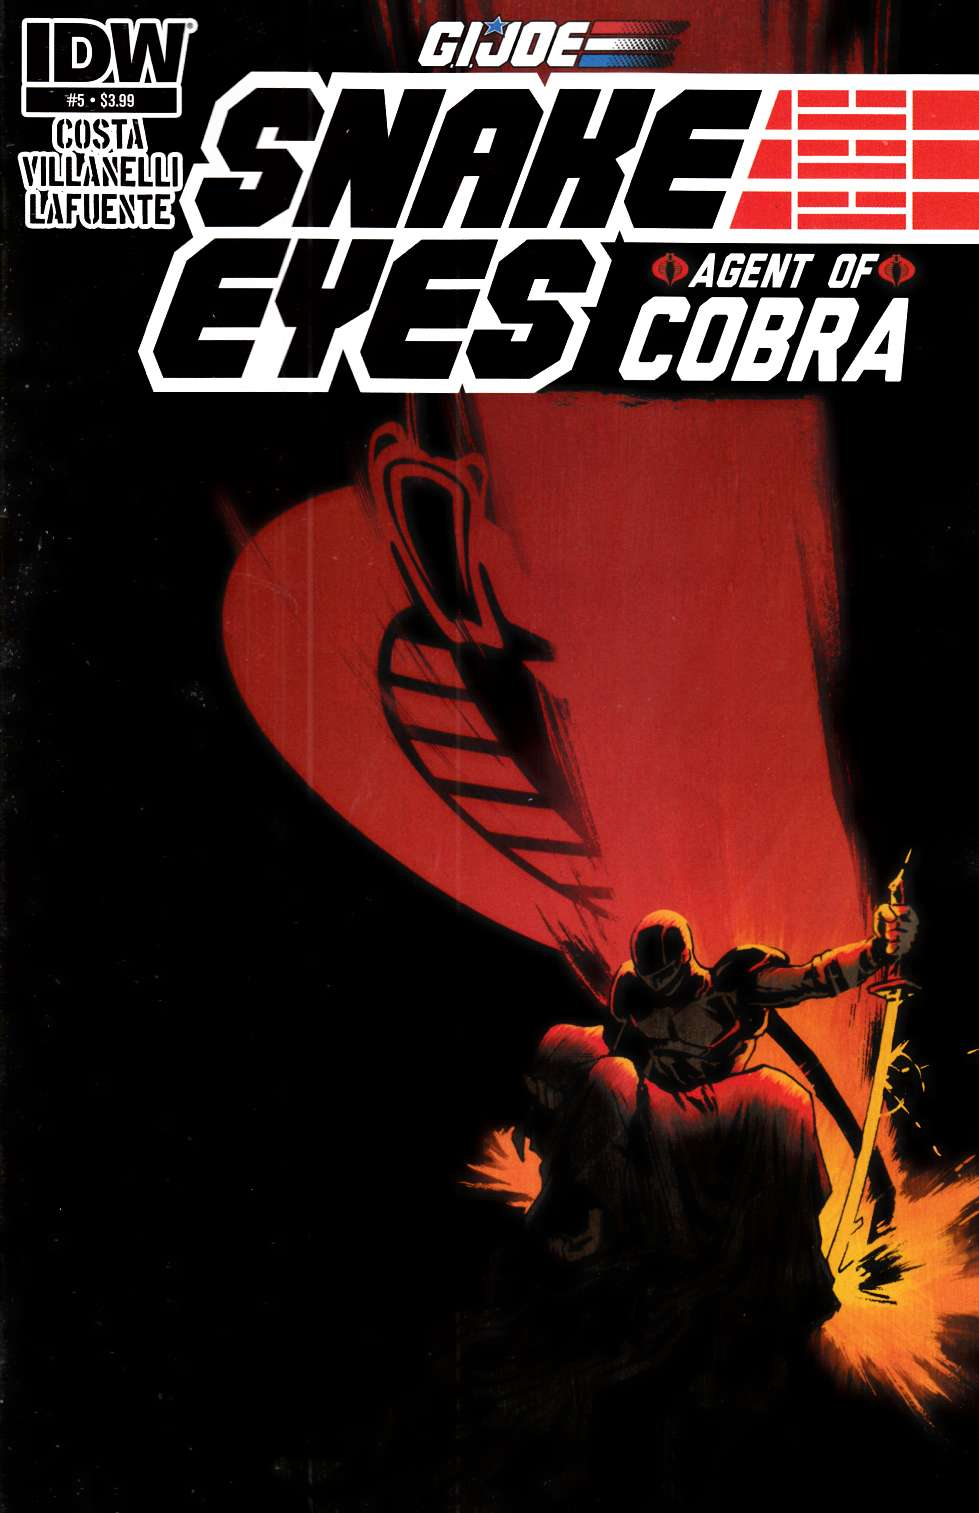 GI Joe Snake Eyes Agent Of Cobra #5 Near Mint (9.4) [IDW Comic]